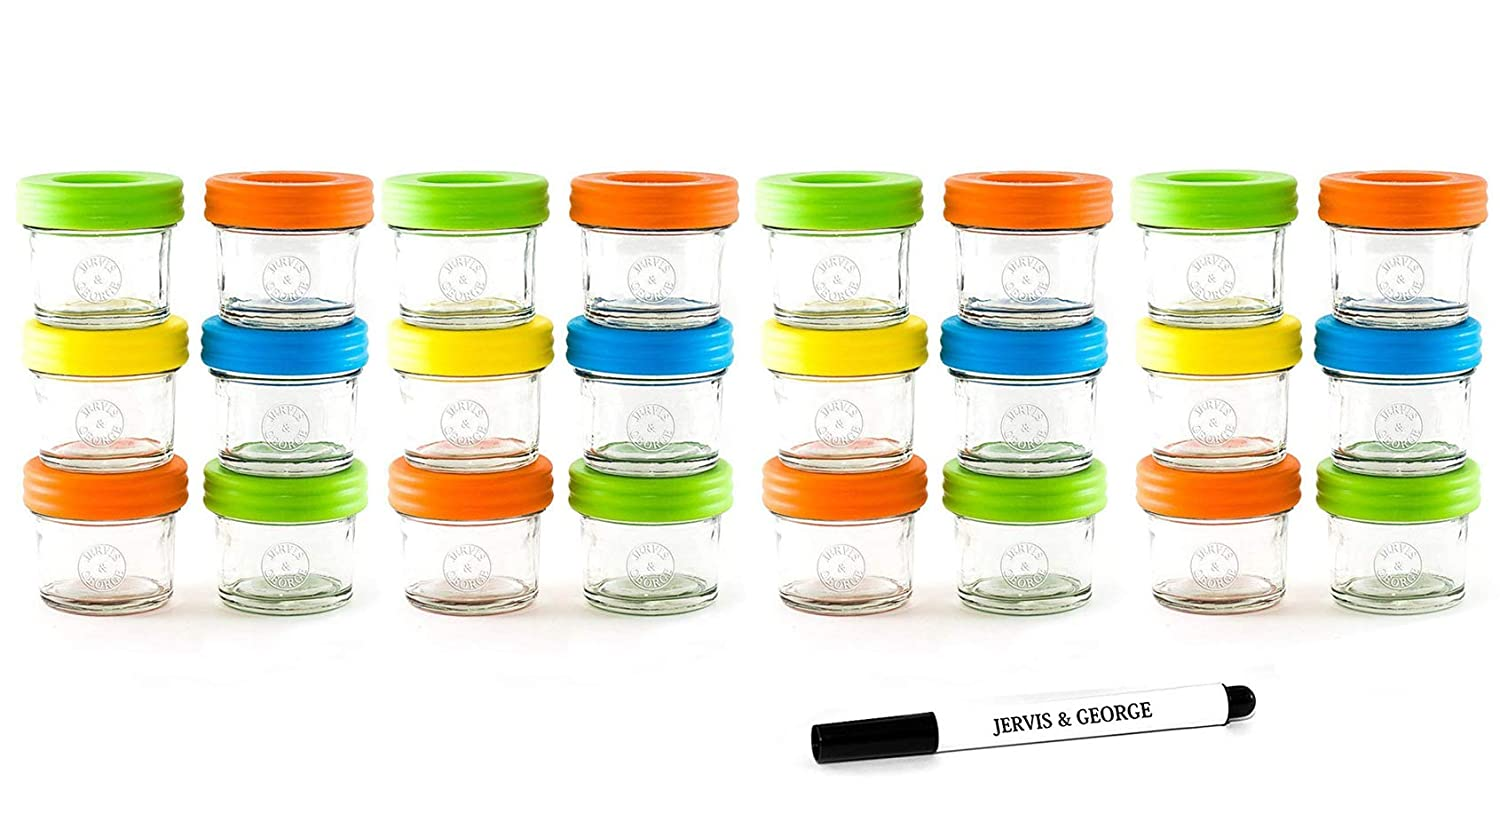 Glass Baby Food Storage Containers - Set Contains 24 Small Reusable 4oz Jars with Airtight Lids - Safely Freeze Your Homemade Baby Food